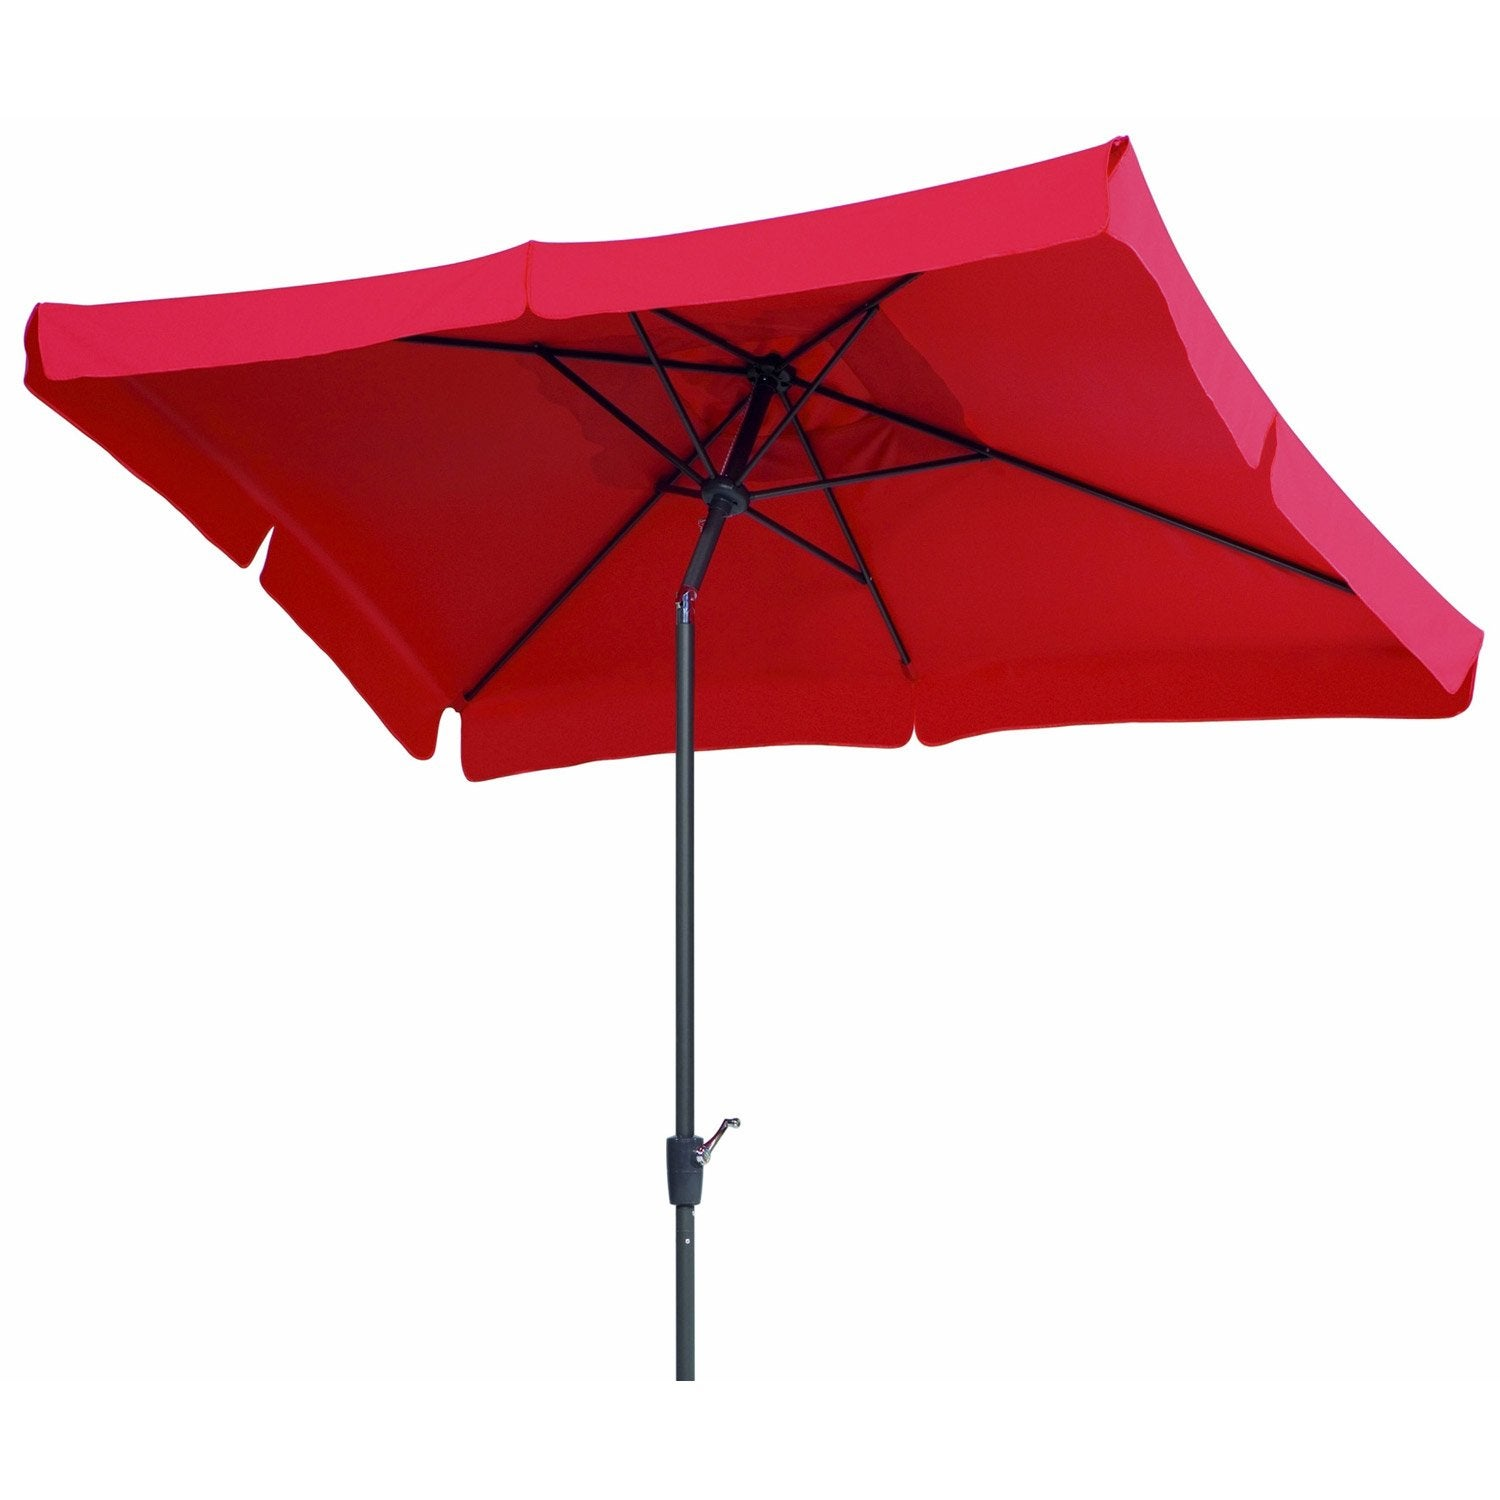 Parasols rectangulaires pour balcons fashion designs - Parasol deporte inclinable leroy merlin ...